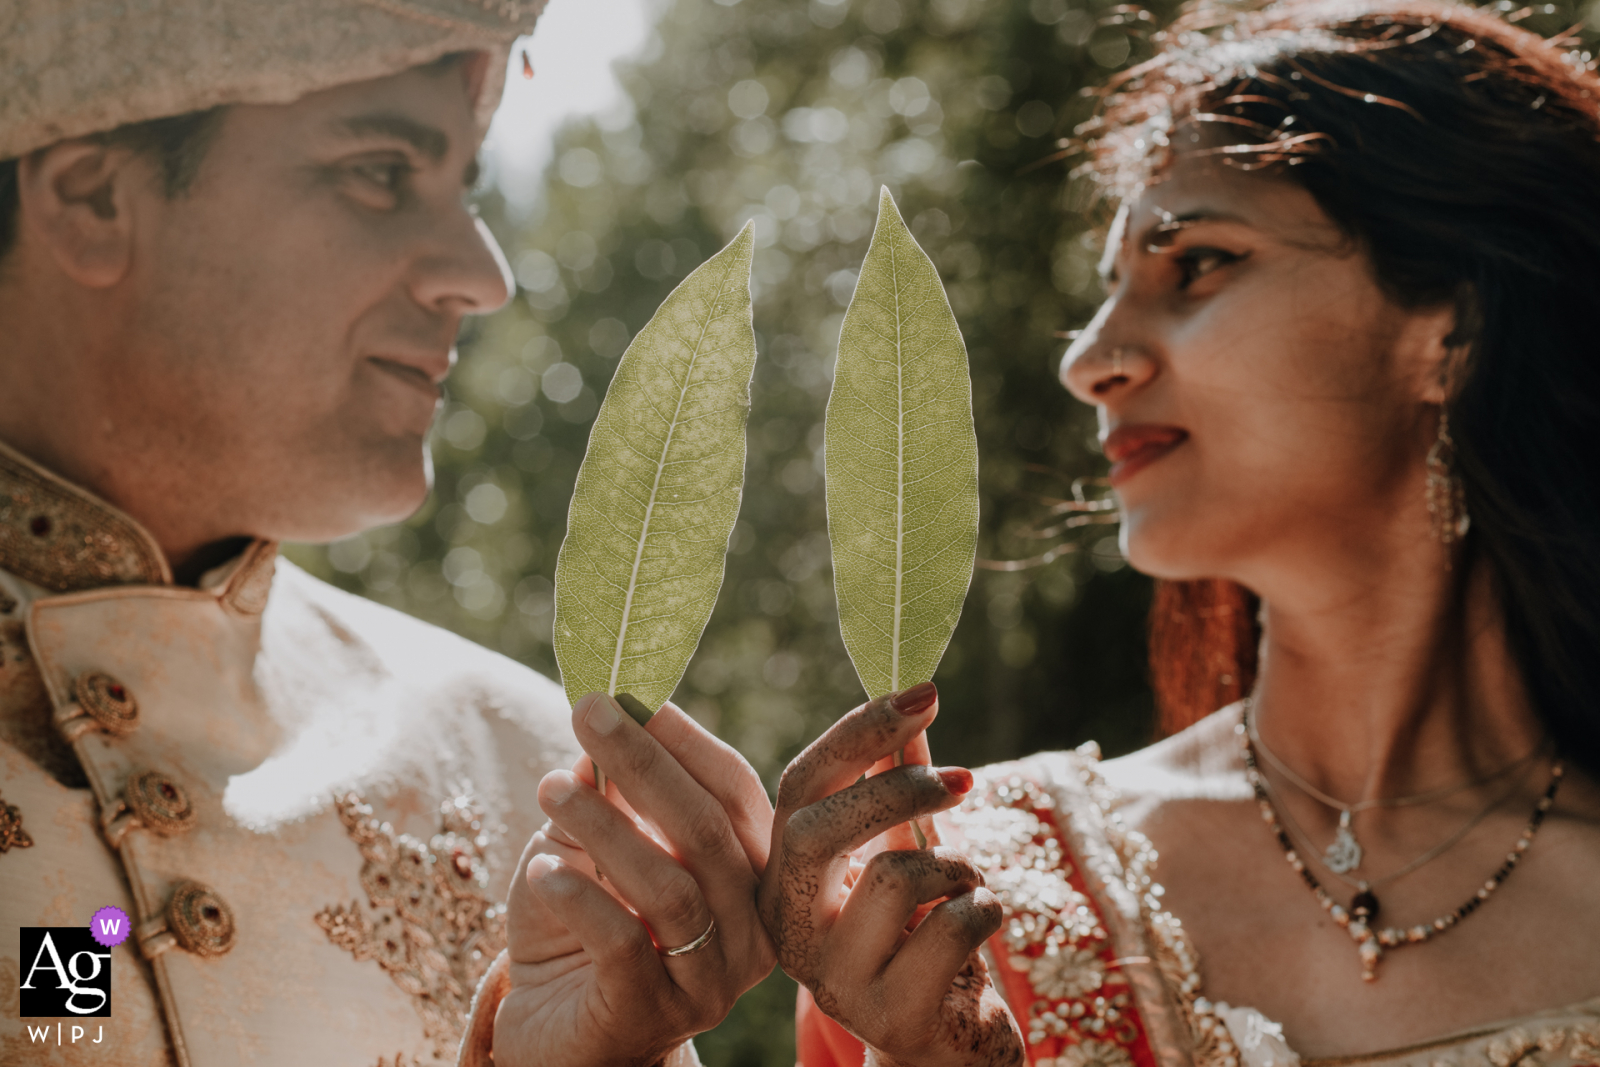 Sintra fine art wedding couple portrait showing Two tree leaves that symbolizes the nature and couple's roots